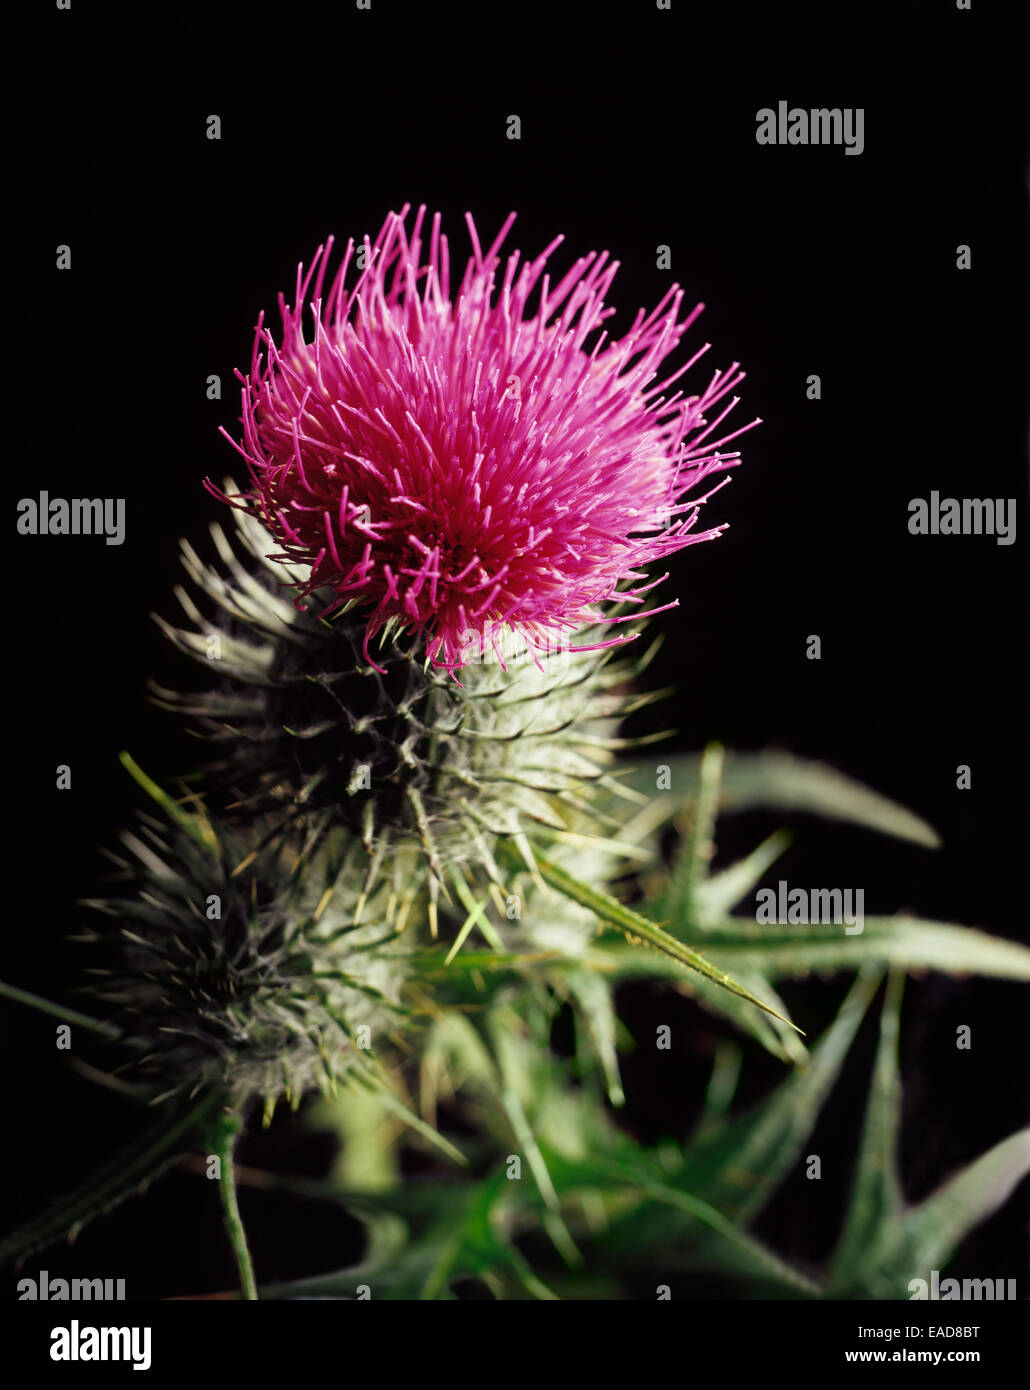 Thistle, Spear thistle, Scotch thistle, Bull thistle, Cirsium vulgare, Pink subject, Black background. - Stock Image